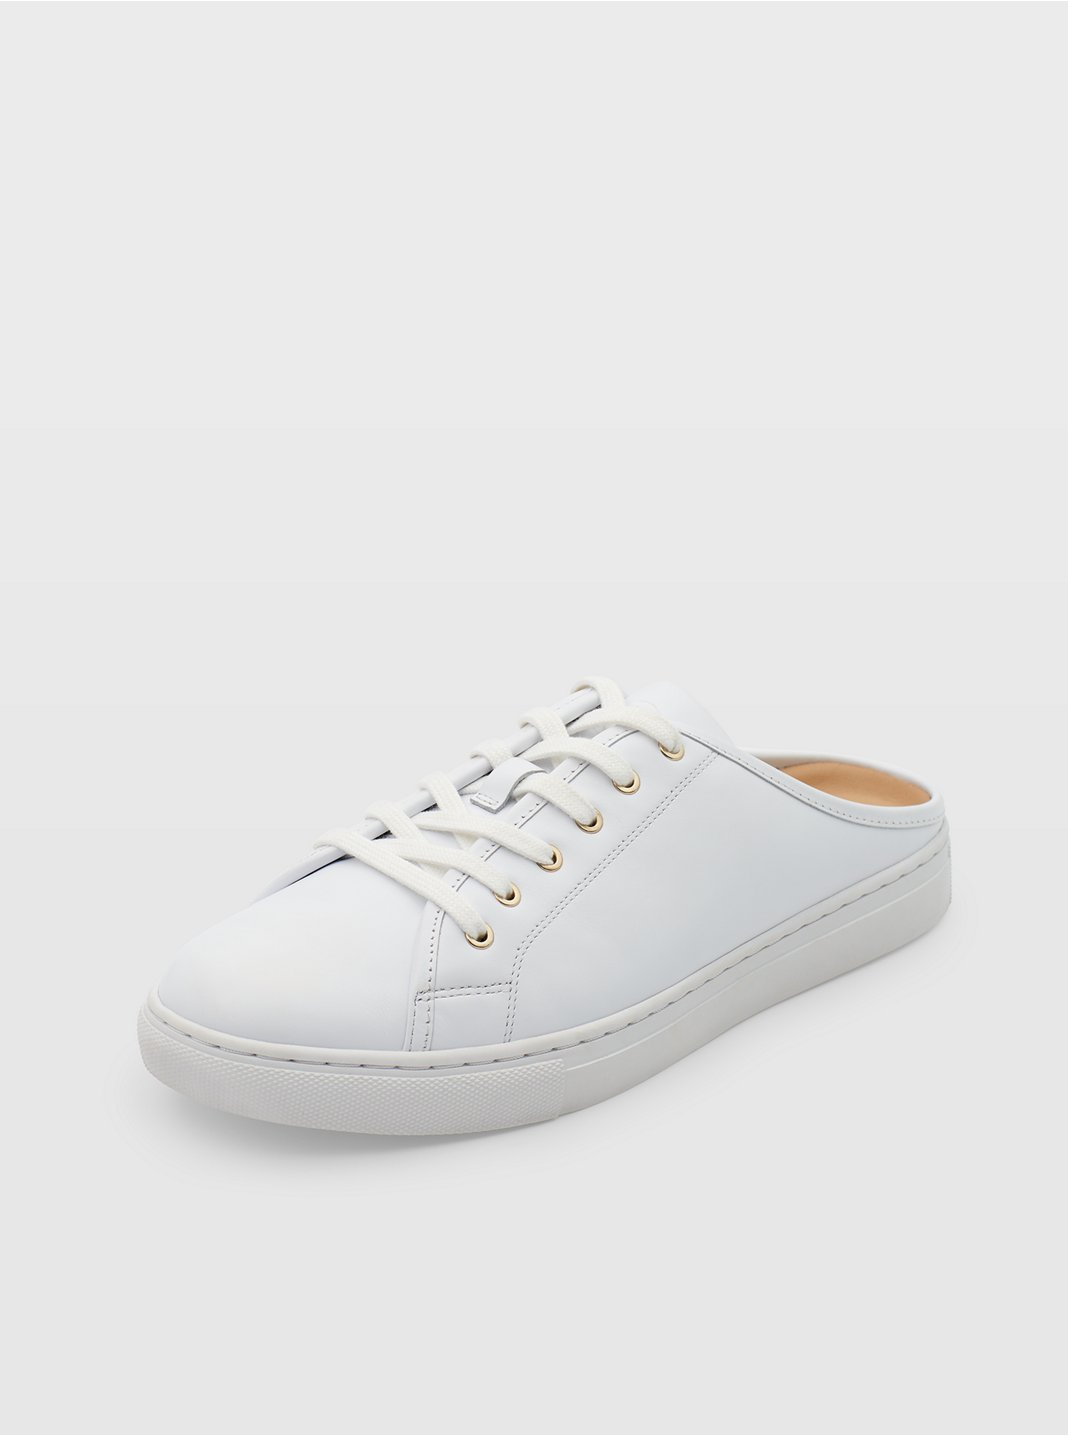 Jamila Leather Sneaker